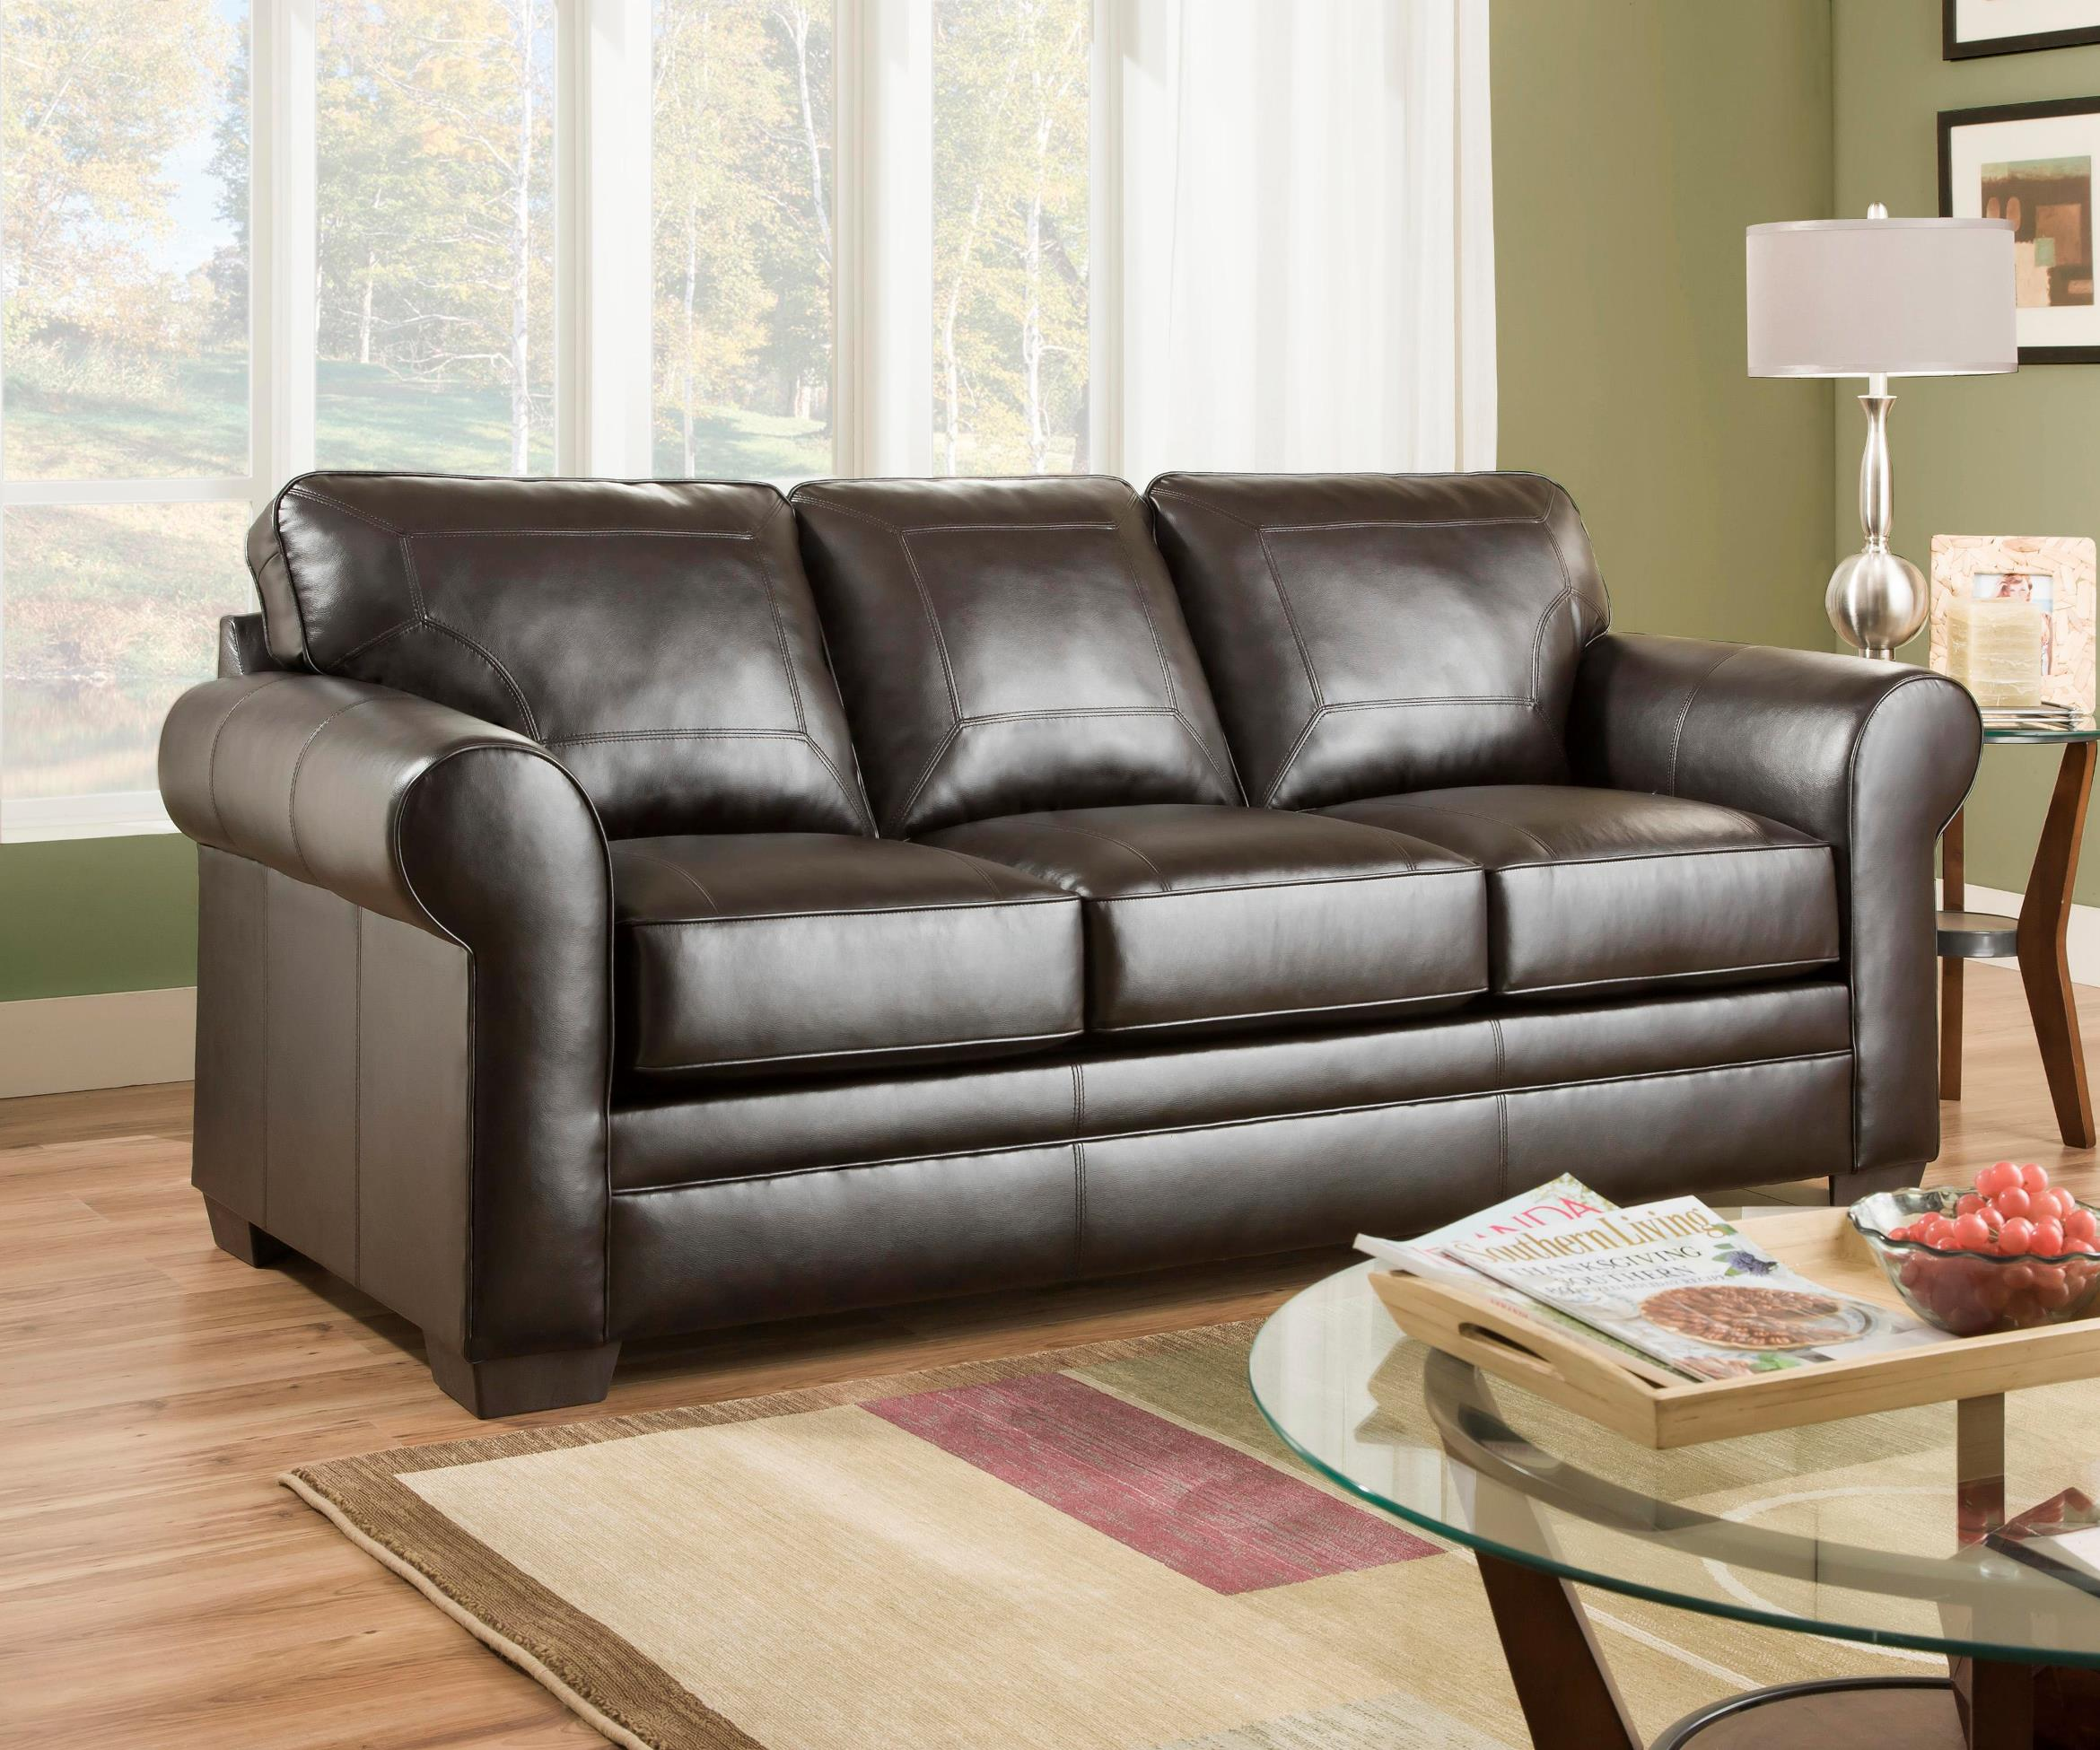 sofa covers at kmart set online order sofas sleeper ansugallery com thesofa